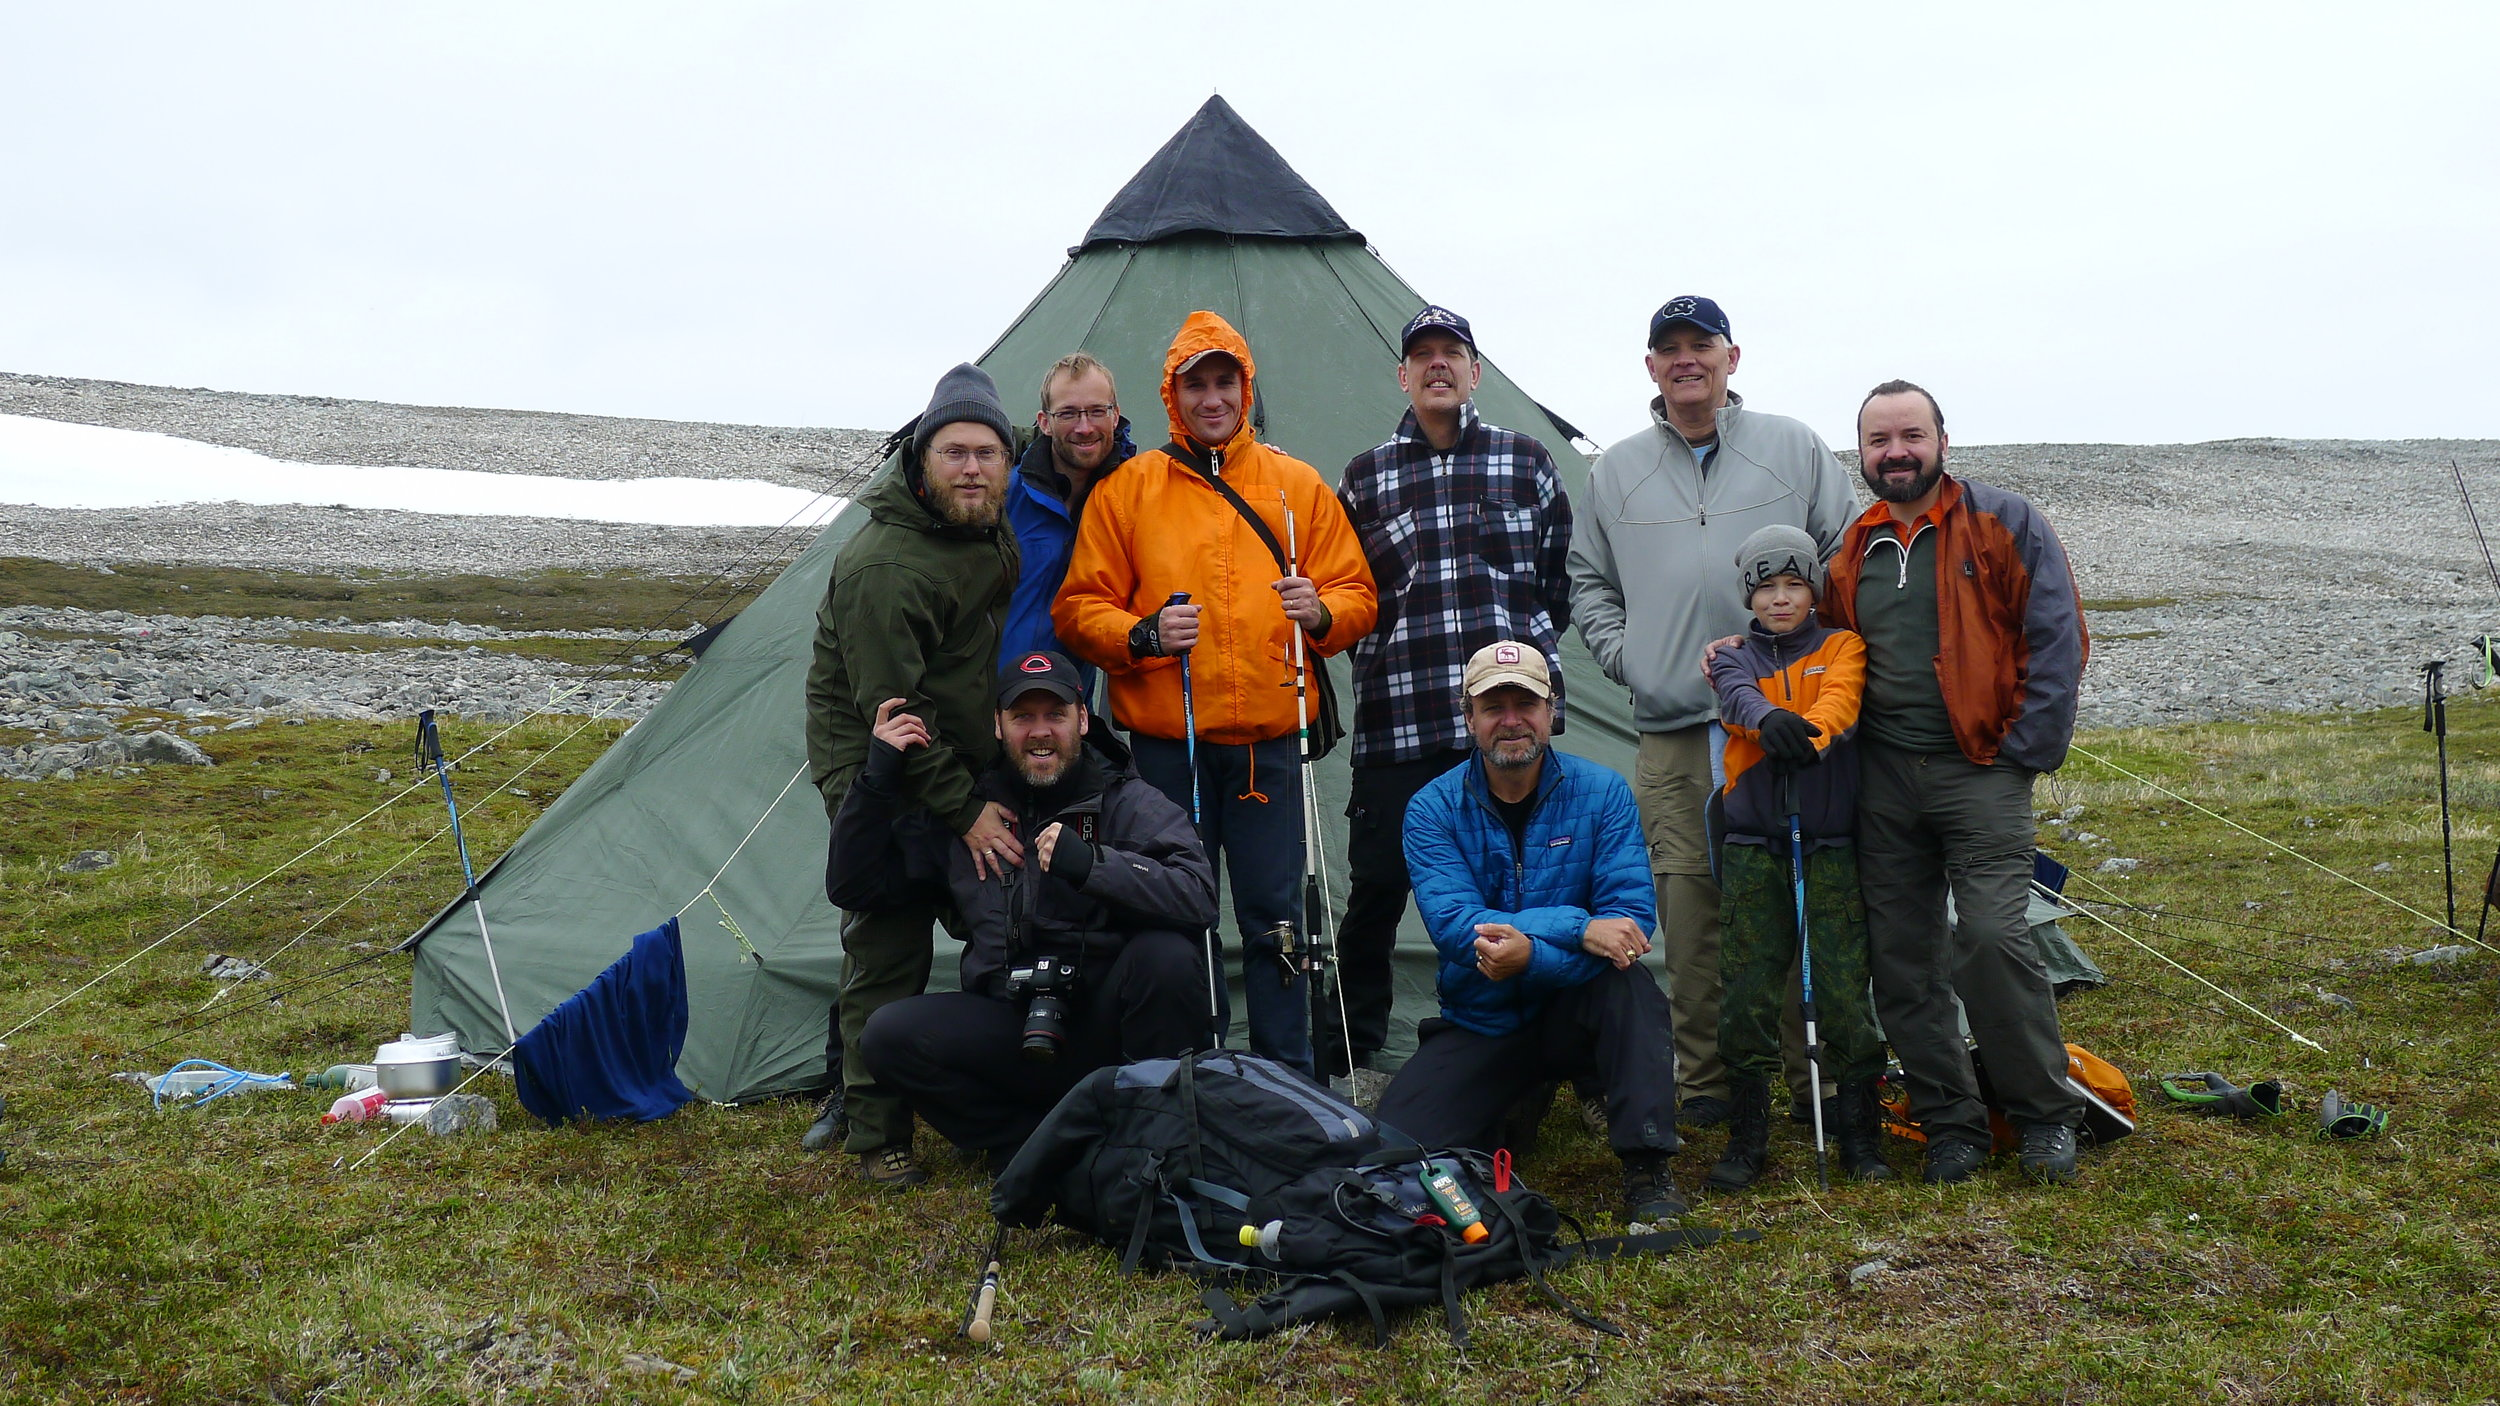 In July 2016 I hiked with new friends along the northern coastline of Norway.